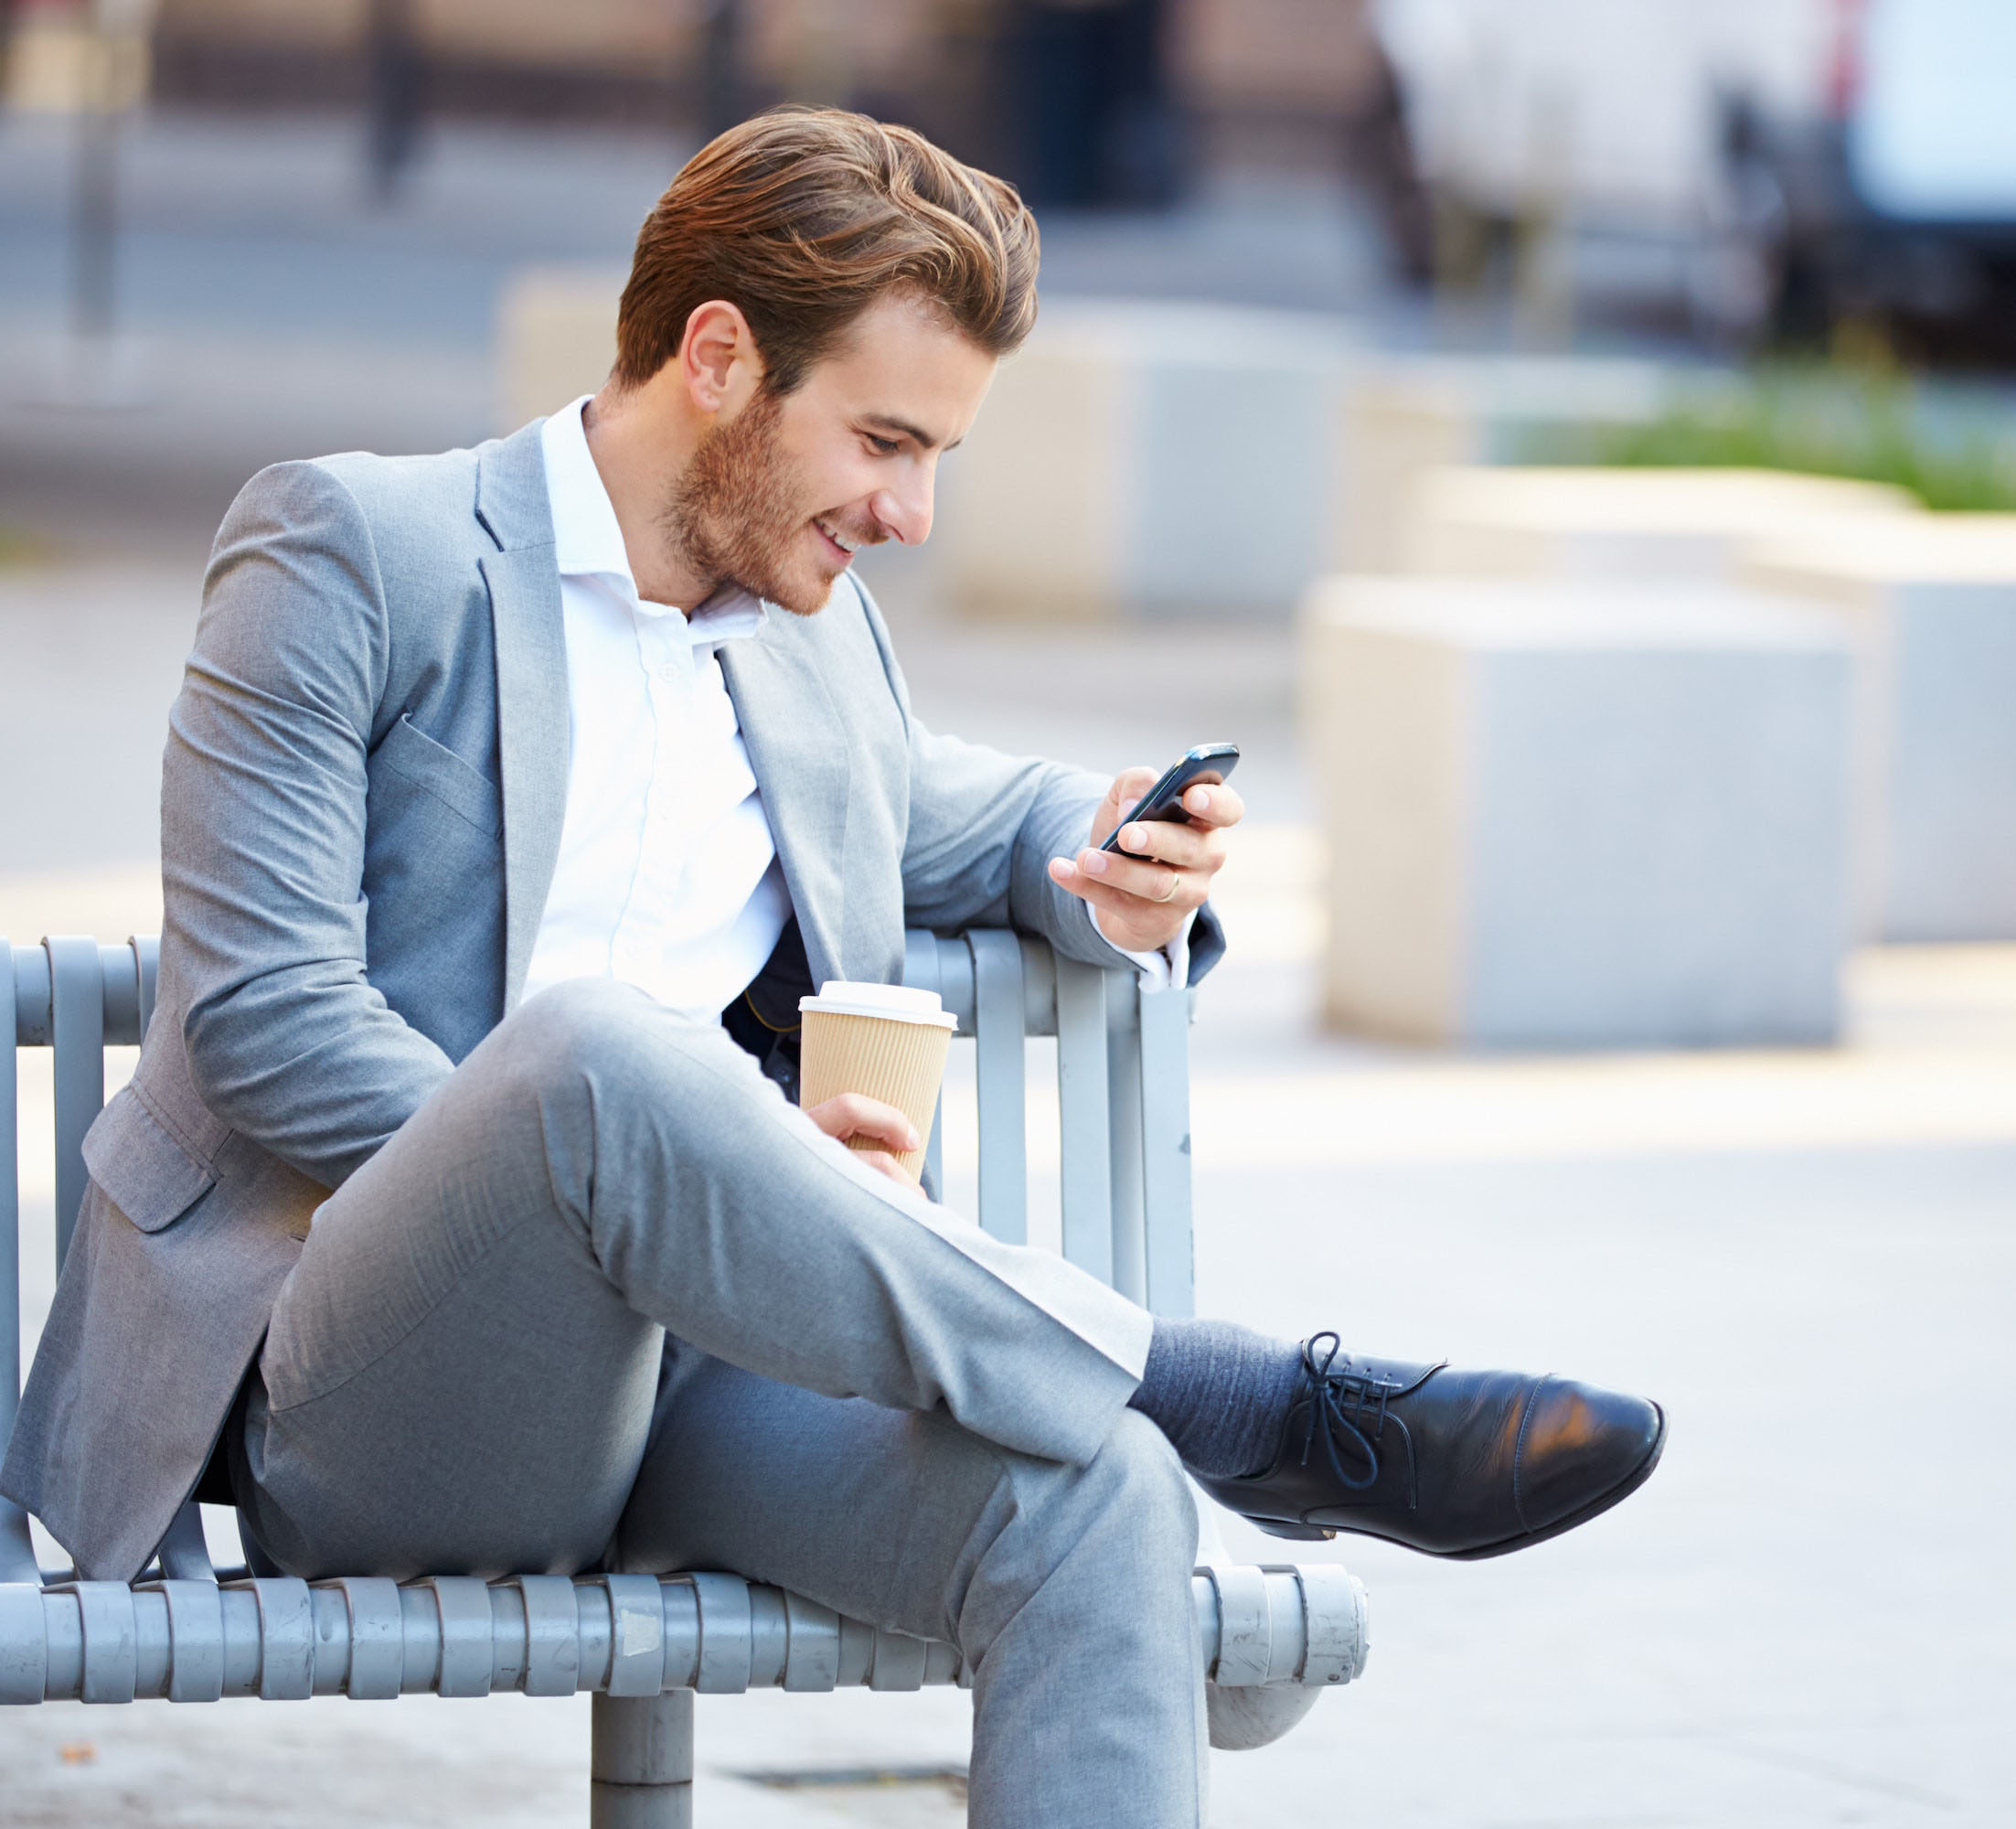 bigstock-Businessman-On-Park-Bench-With-64115242-min